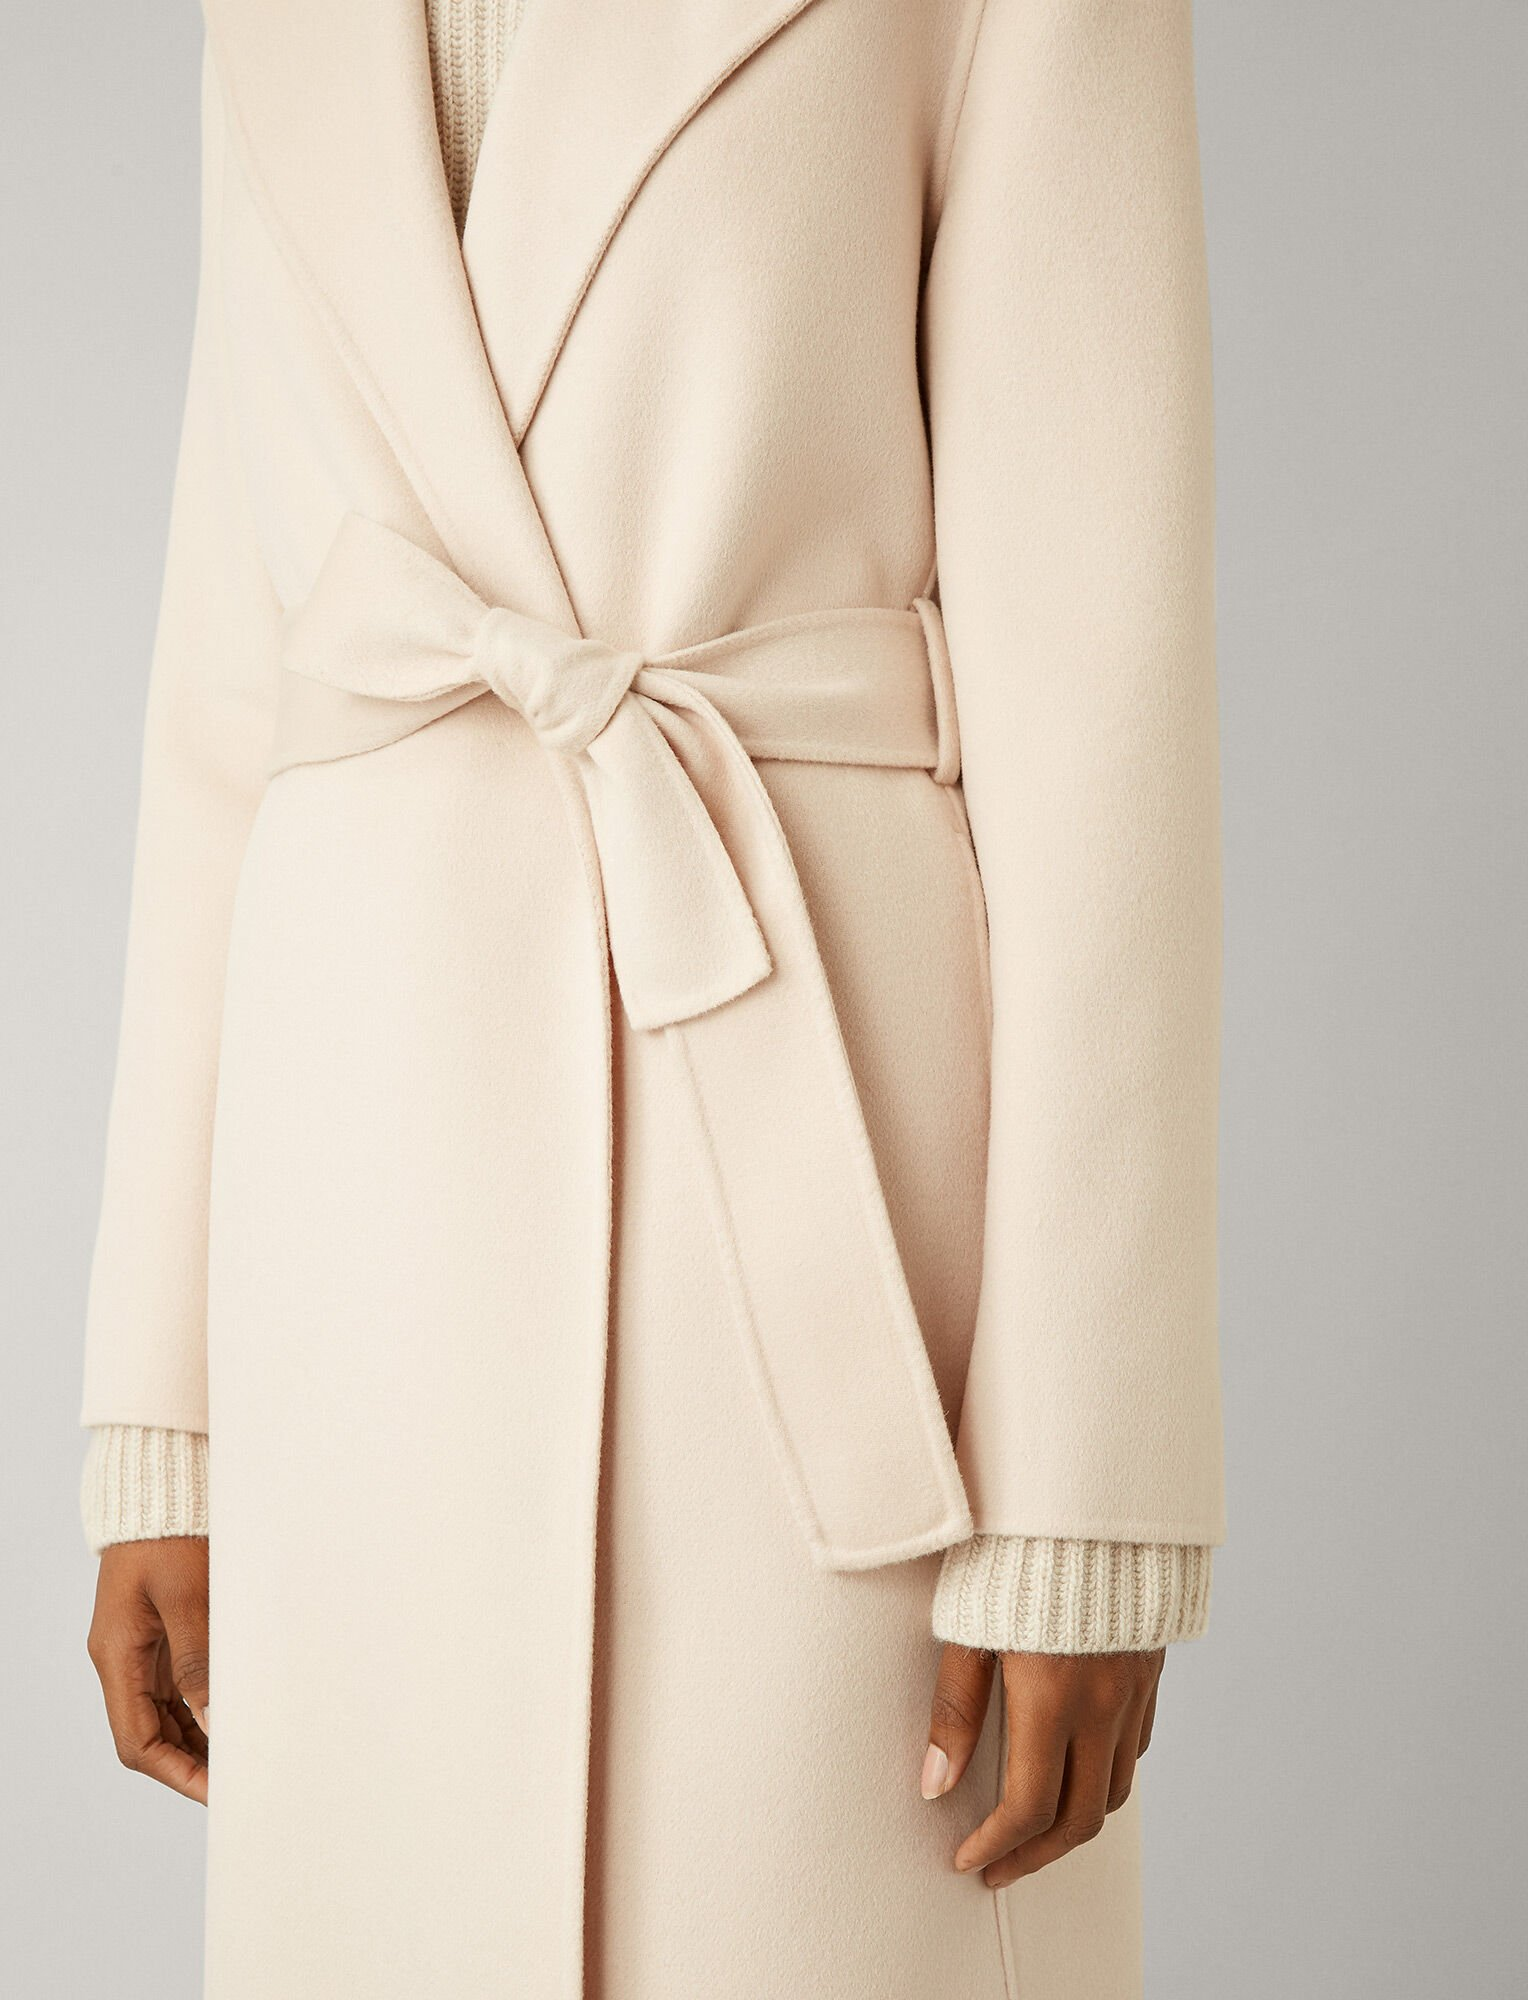 Joseph, Lima Double Face Cashmere Coat, in ROSEWATER